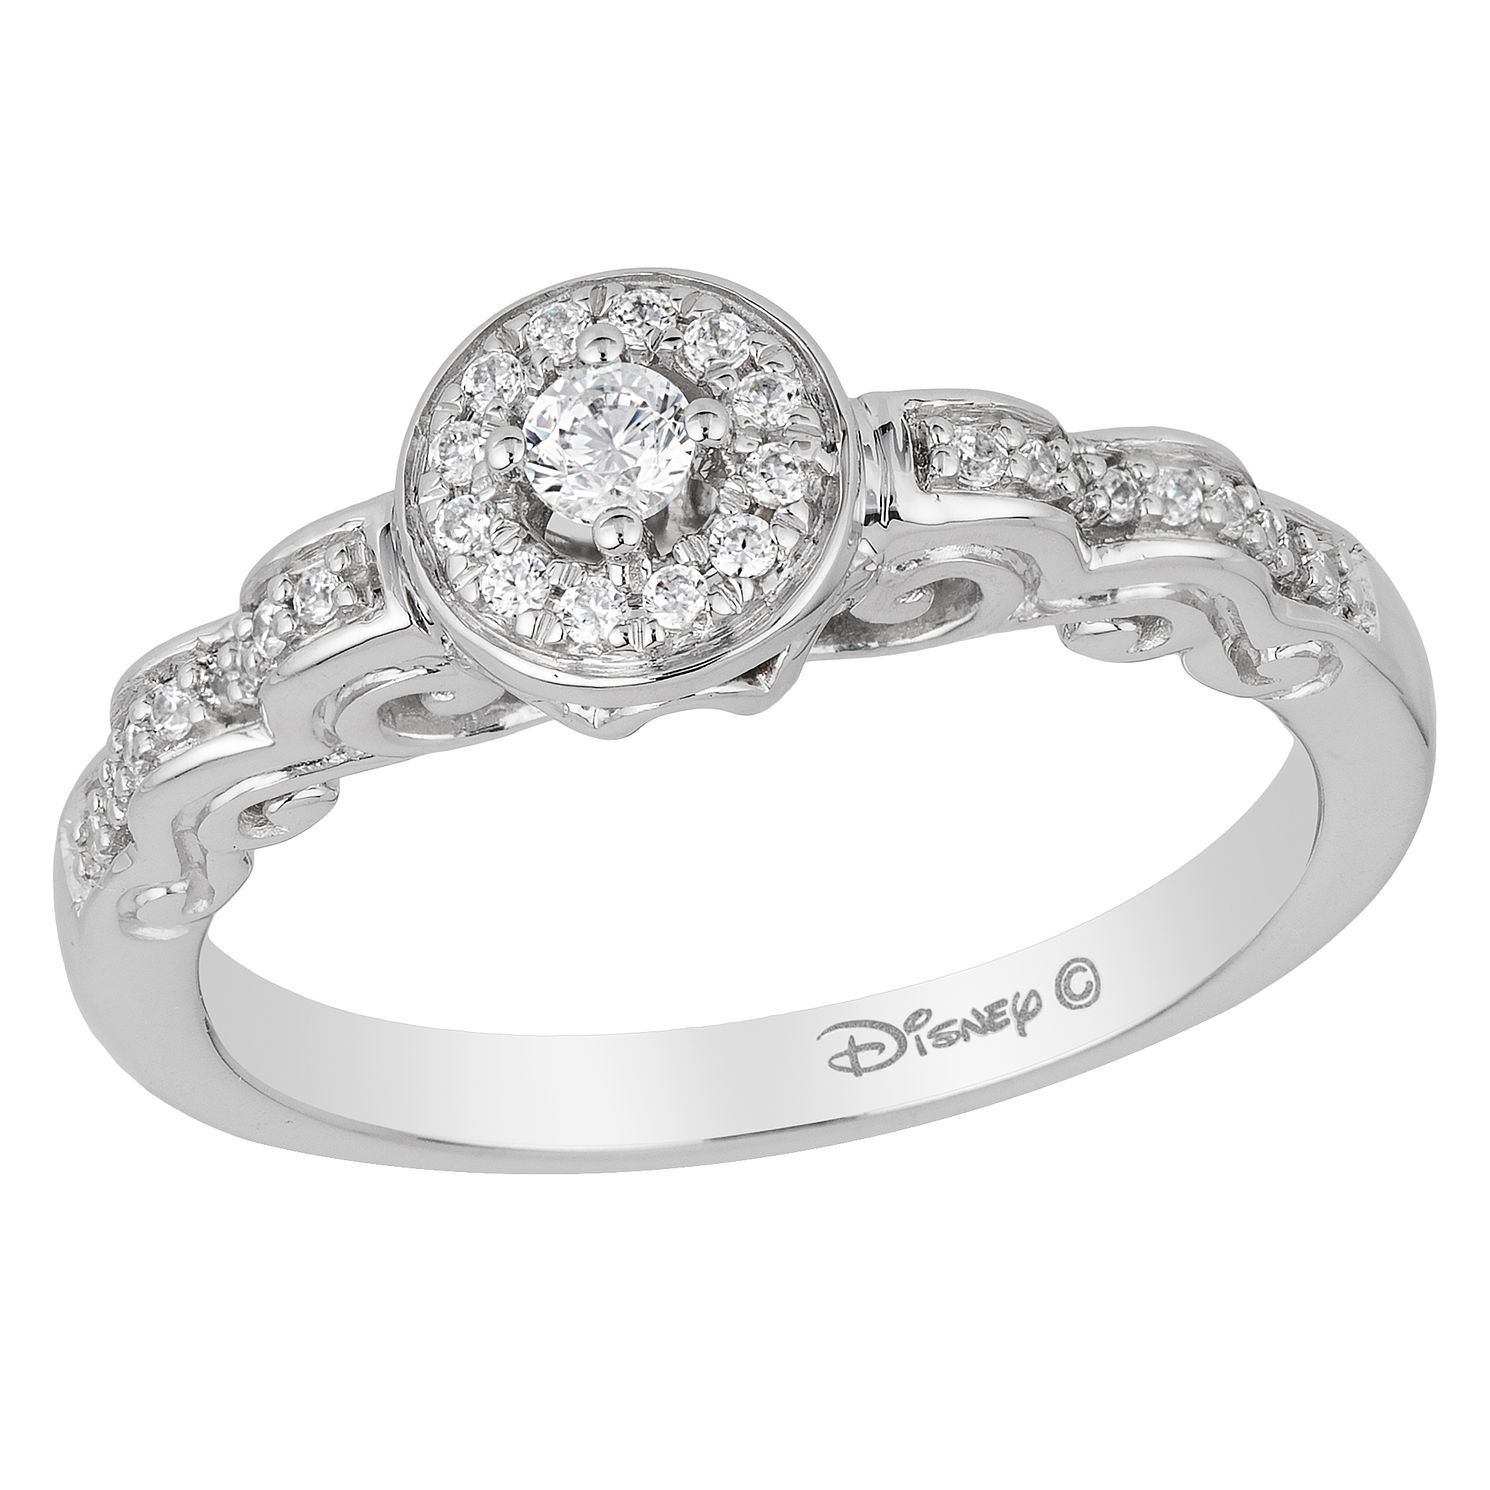 the wedding engagement diamond ring introducing ribbon white diamonds cinderella in rings collection gold